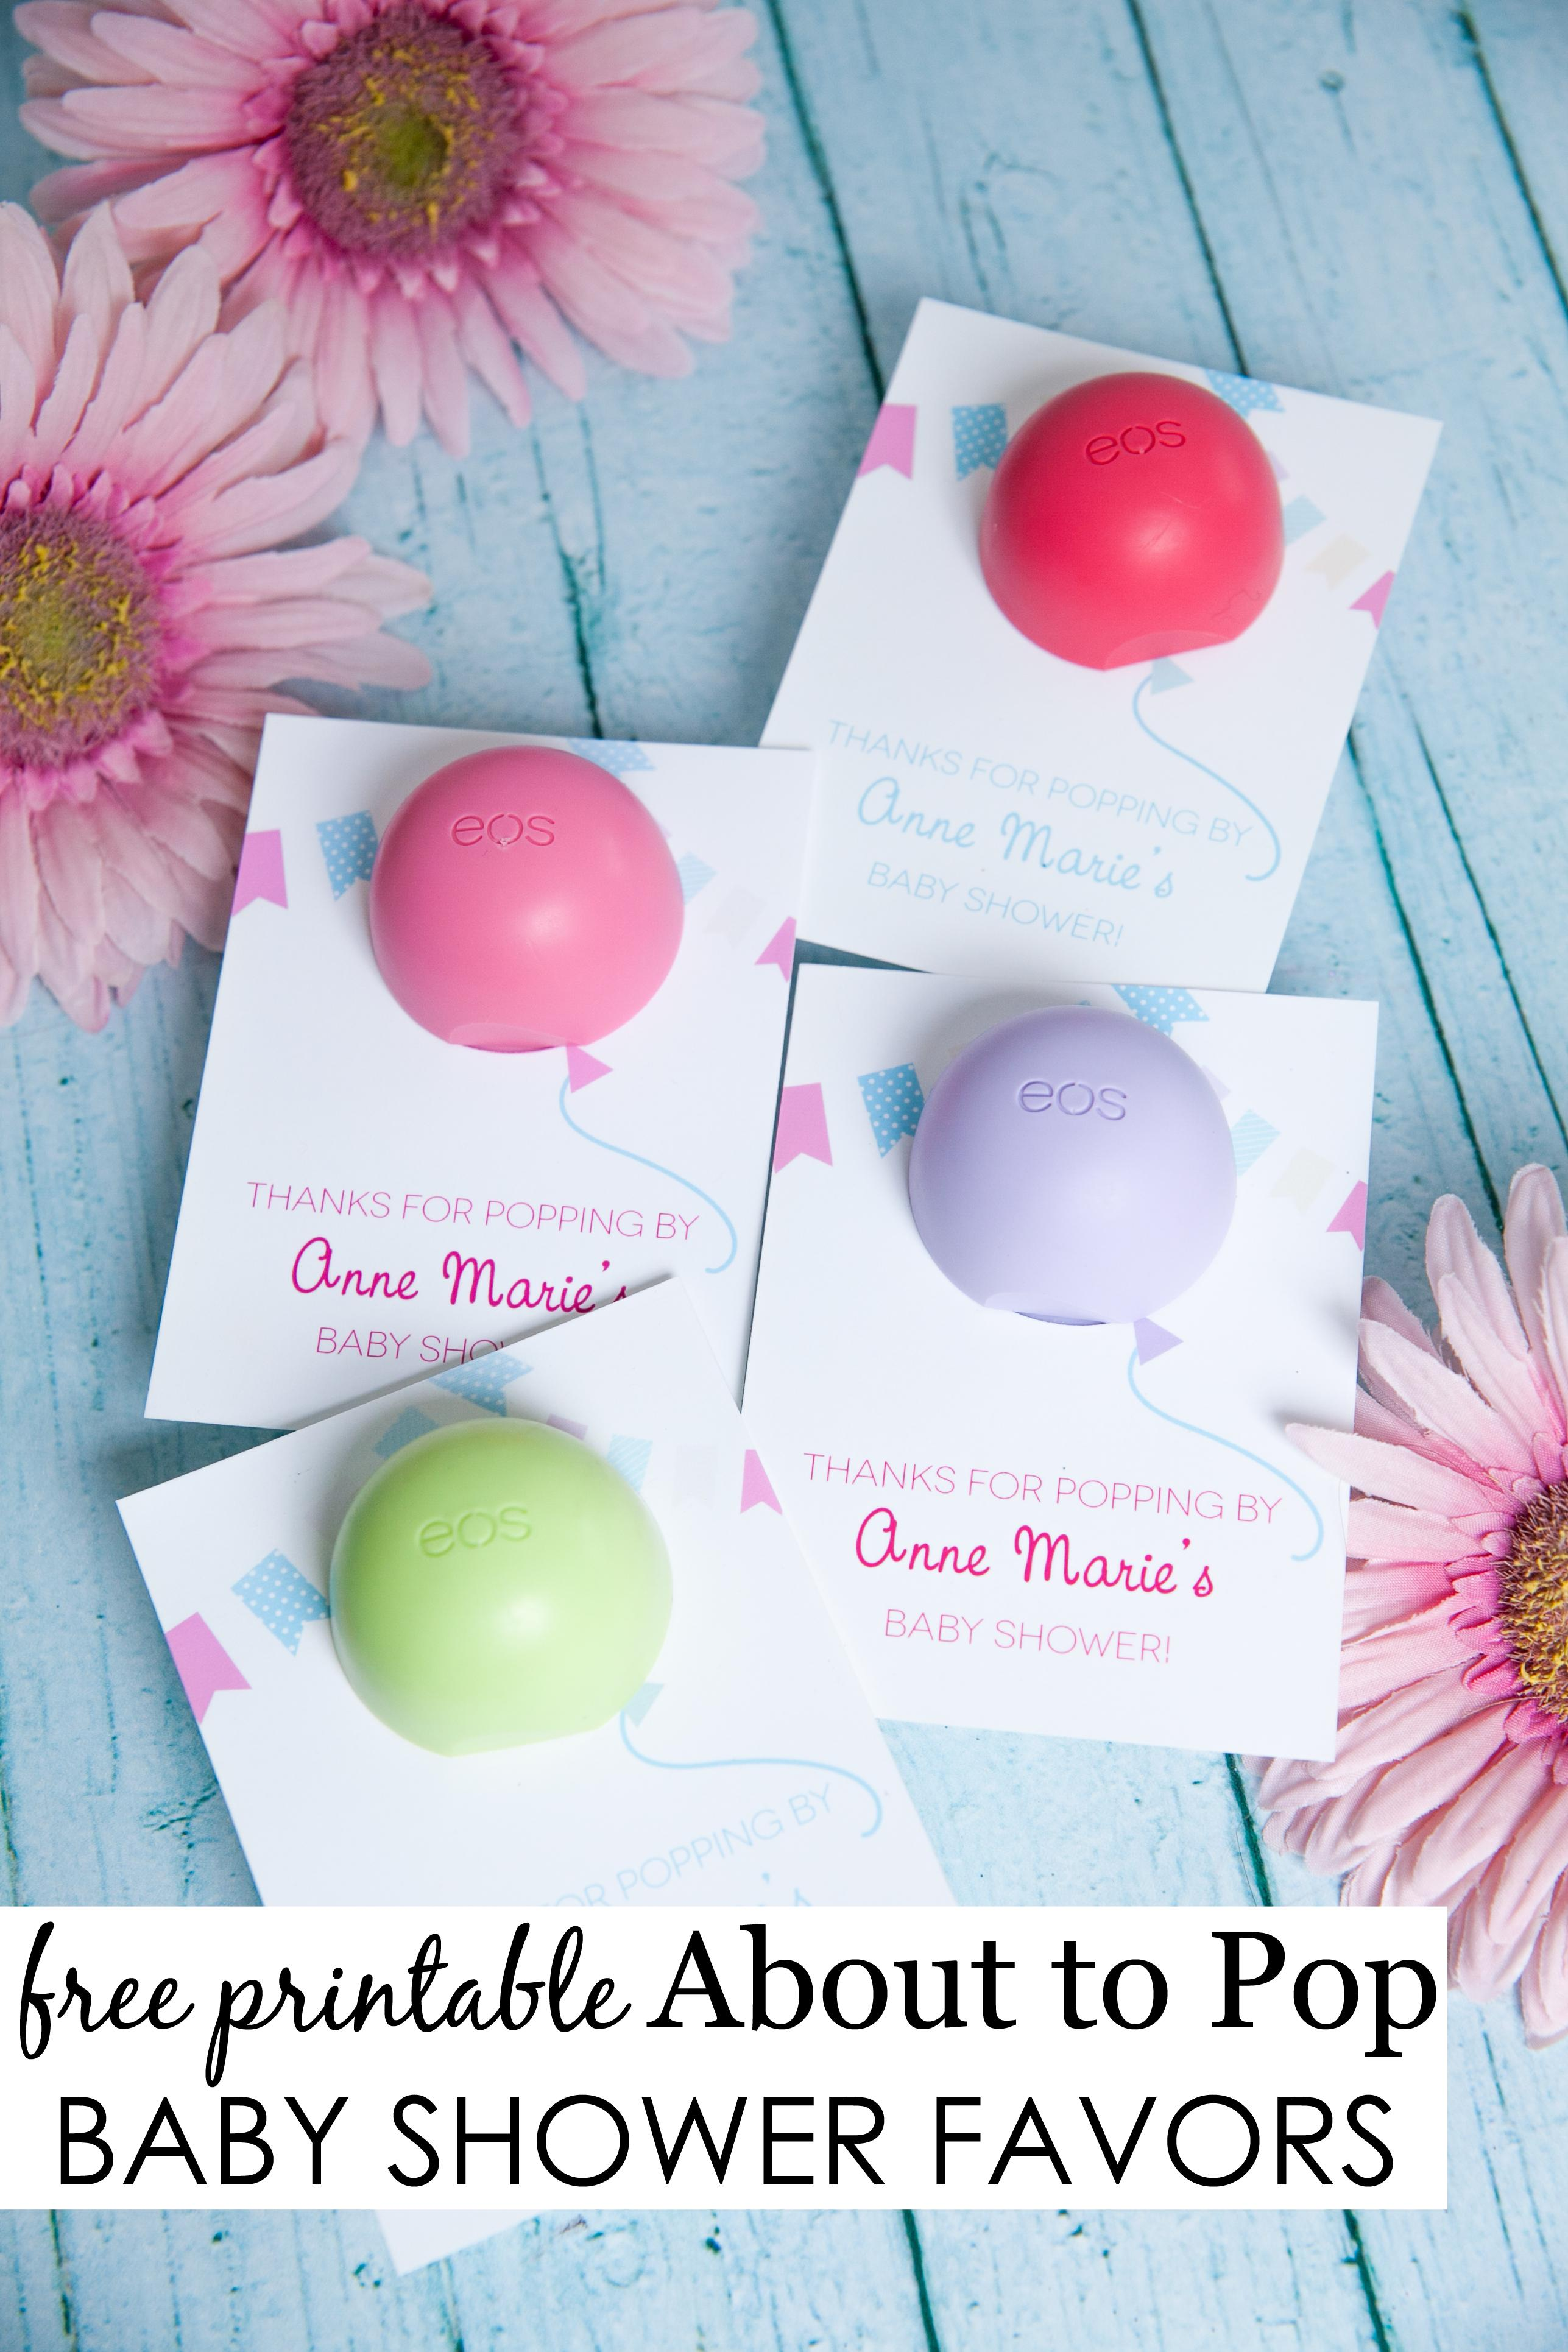 Eos Lip Balm Template Baby Shower